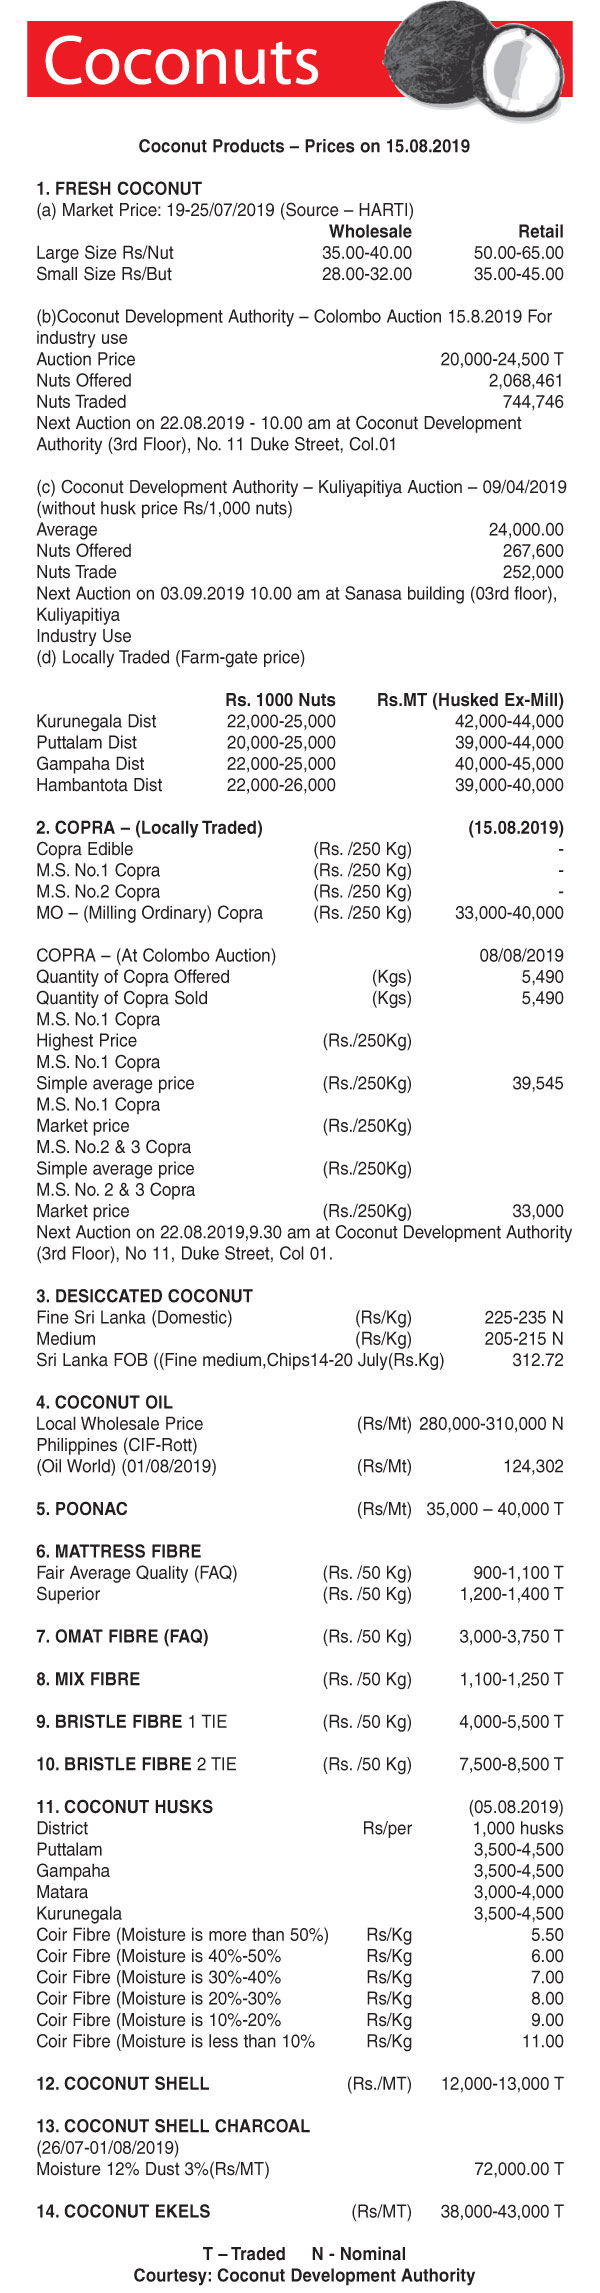 Coconut Products – Prices on 15 08 2019 | Daily News